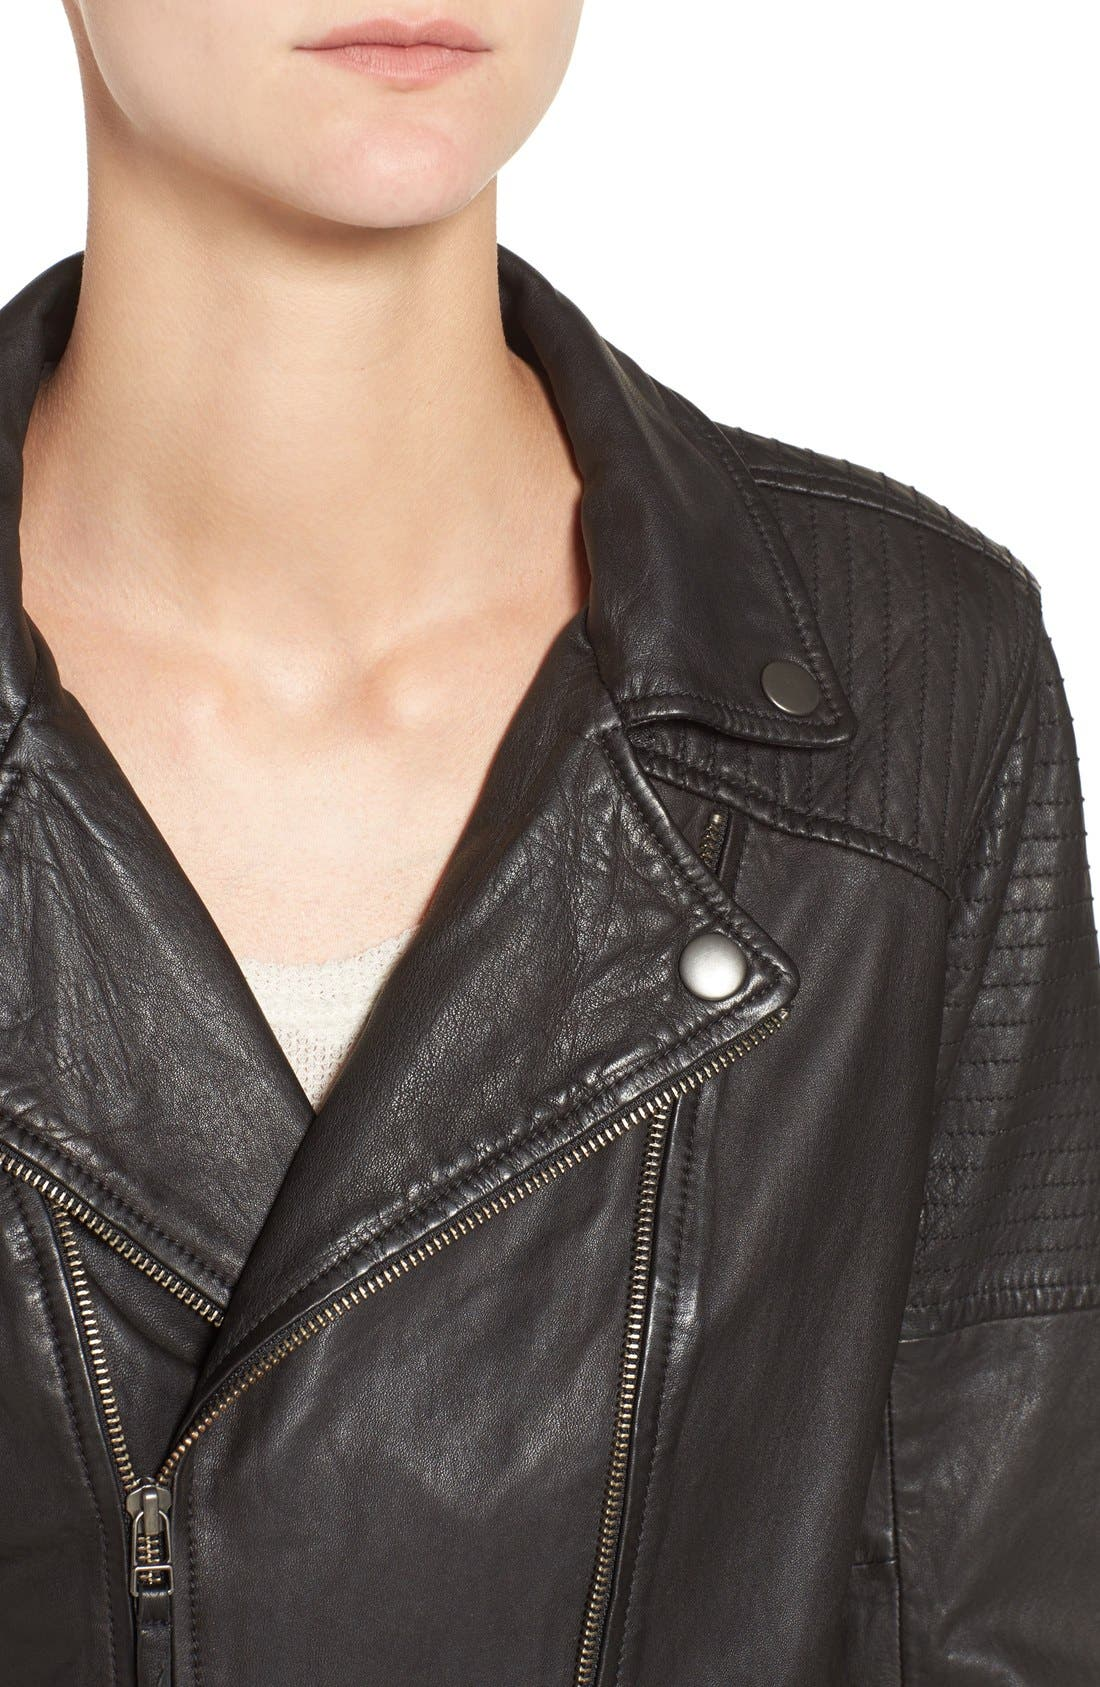 Quilted Leather Moto Jacket,                             Alternate thumbnail 9, color,                             001